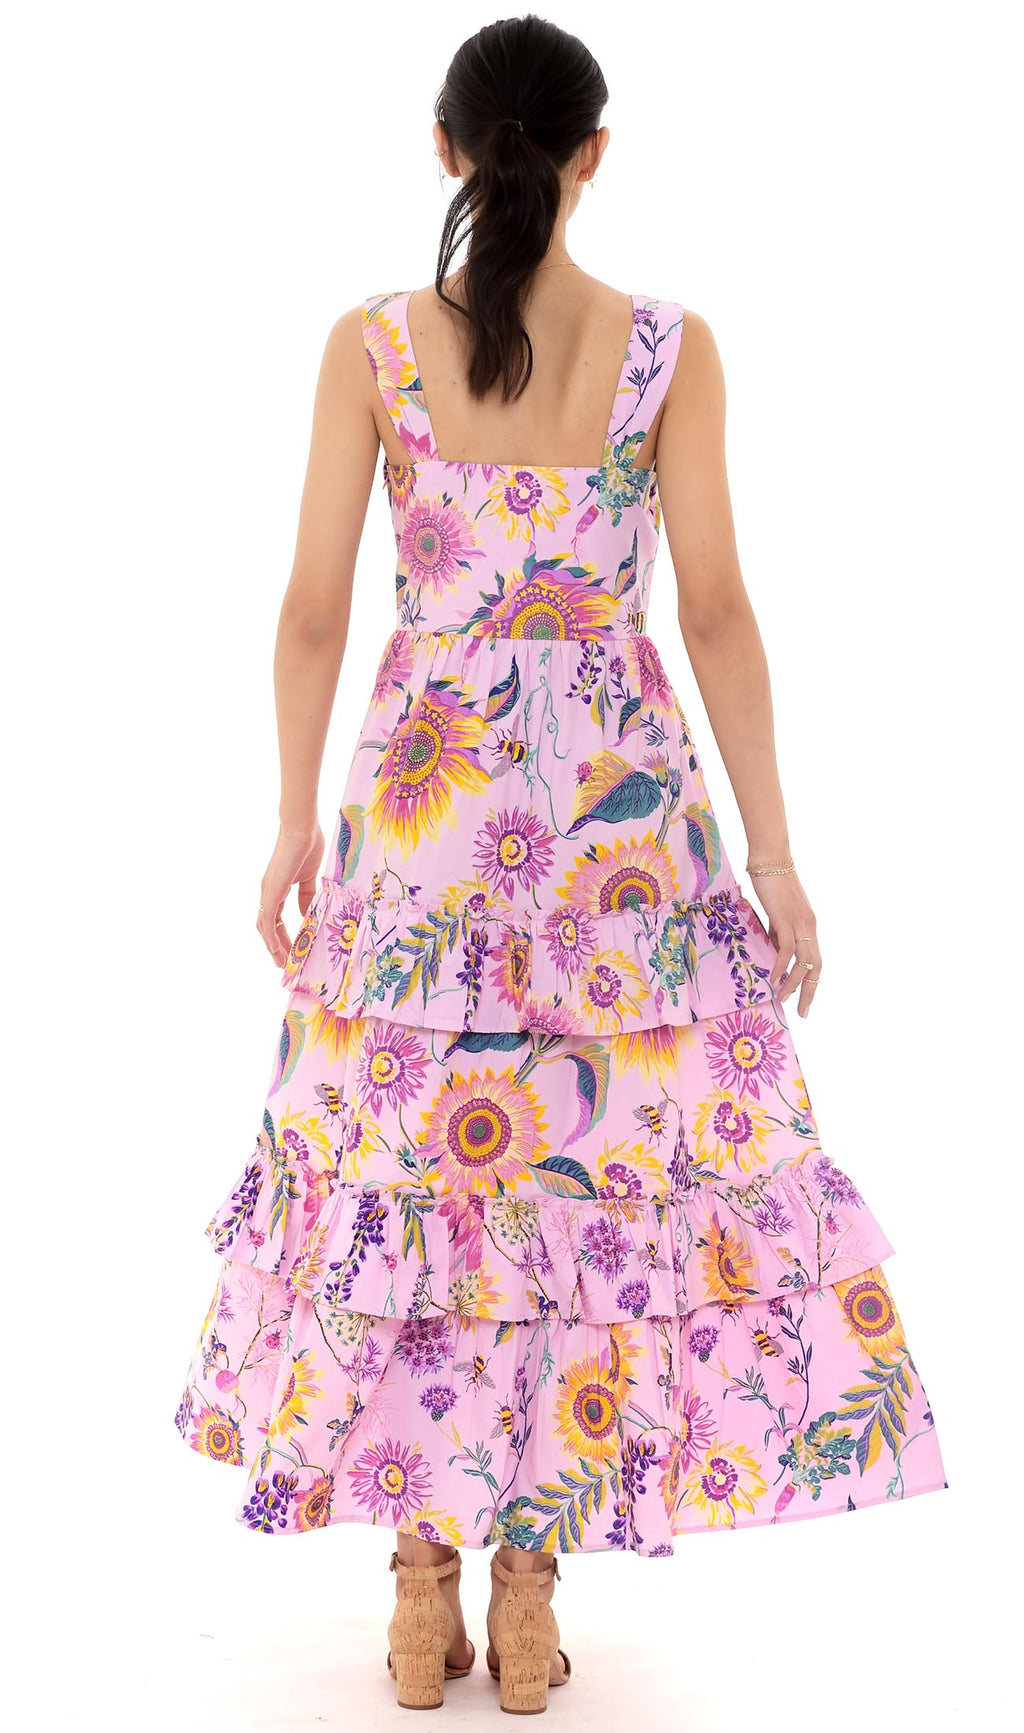 Serafina Dress, Mid-Summer Bumble Orchid Bouquet, 100% Cotton Poplin